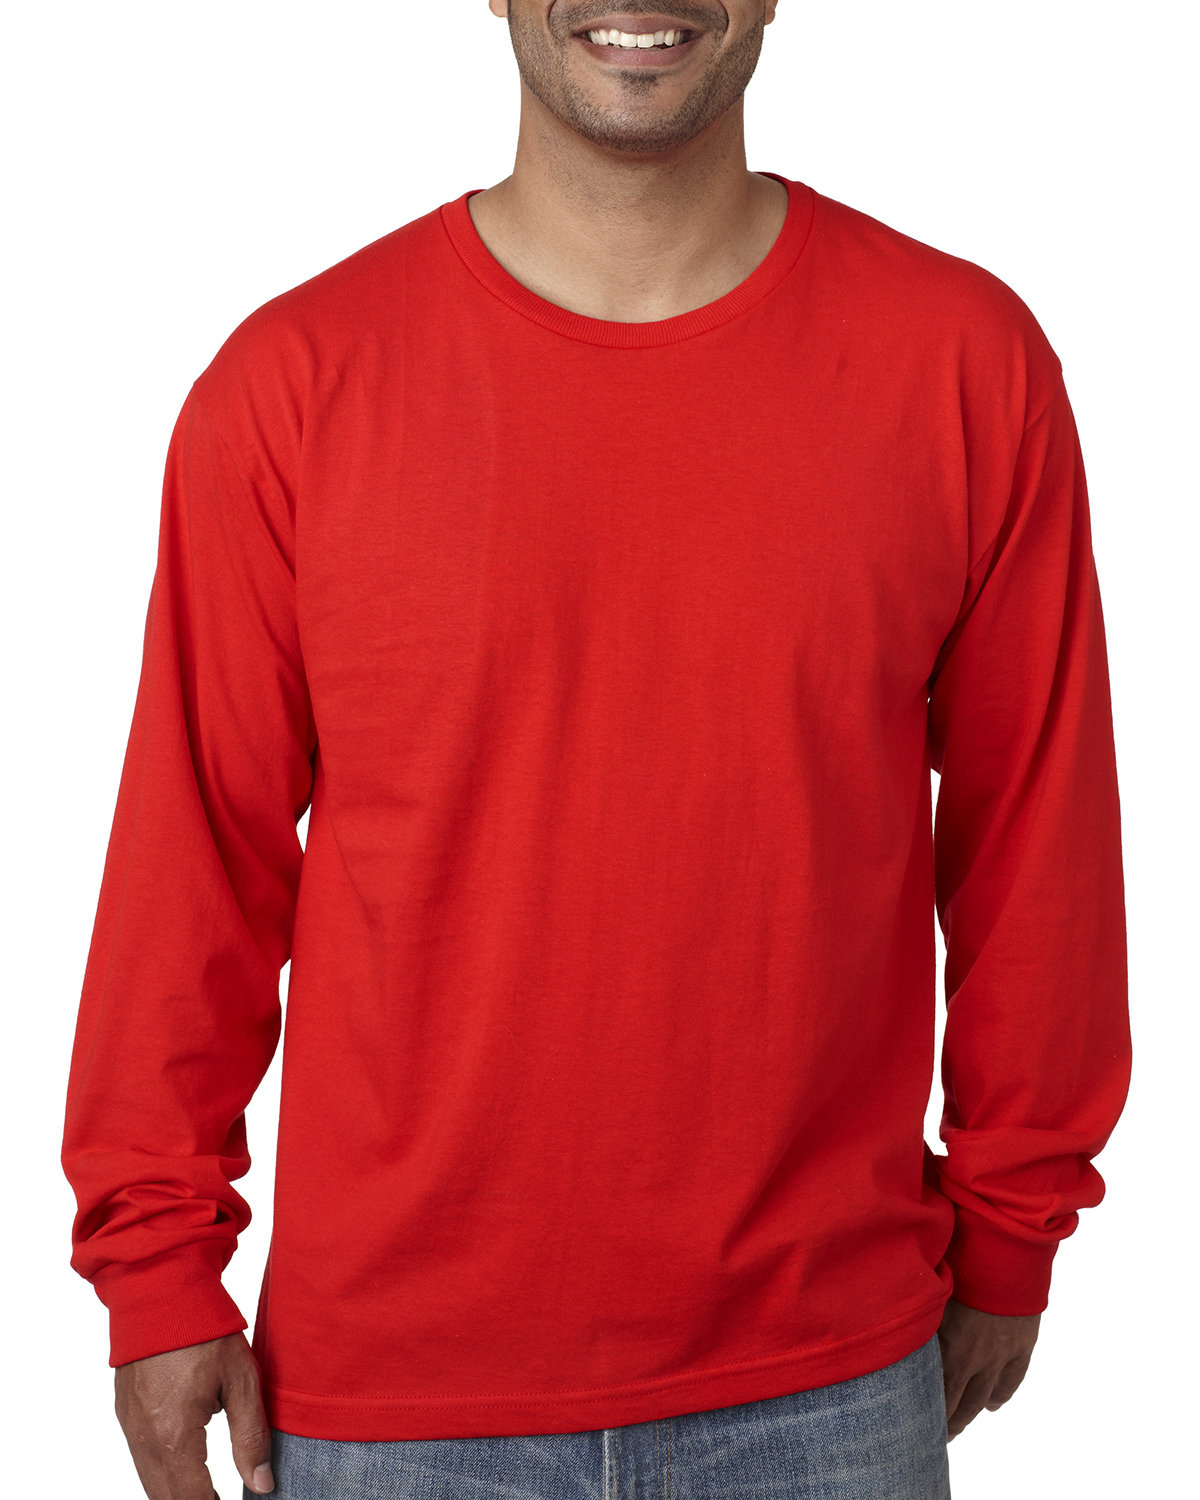 Bayside Adult Long-Sleeve T-Shirt RED